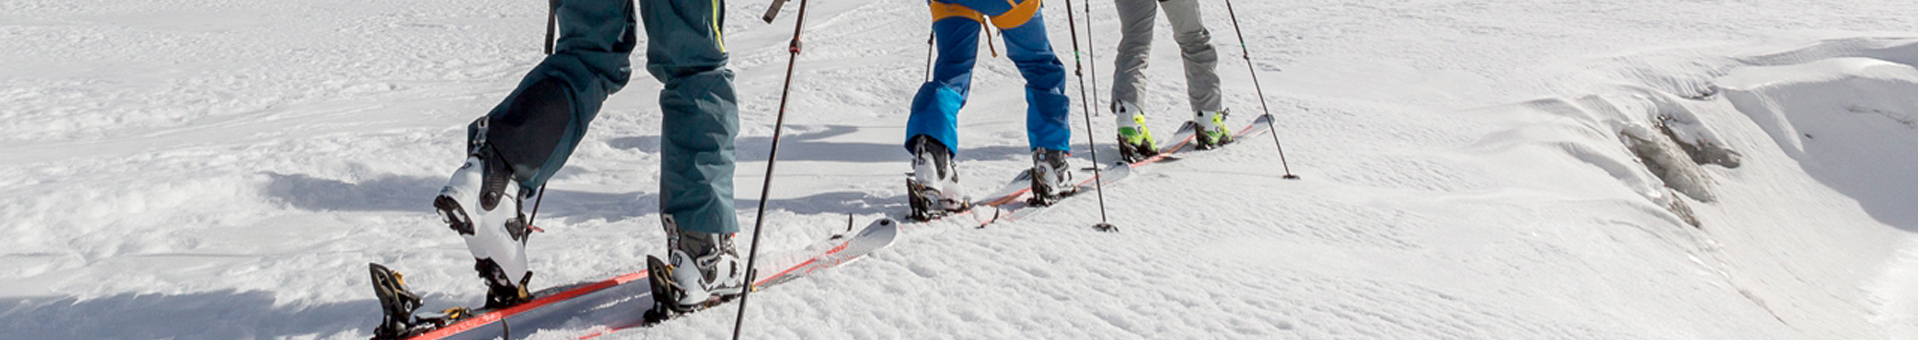 Accessoires Chaussures Ski Alpin